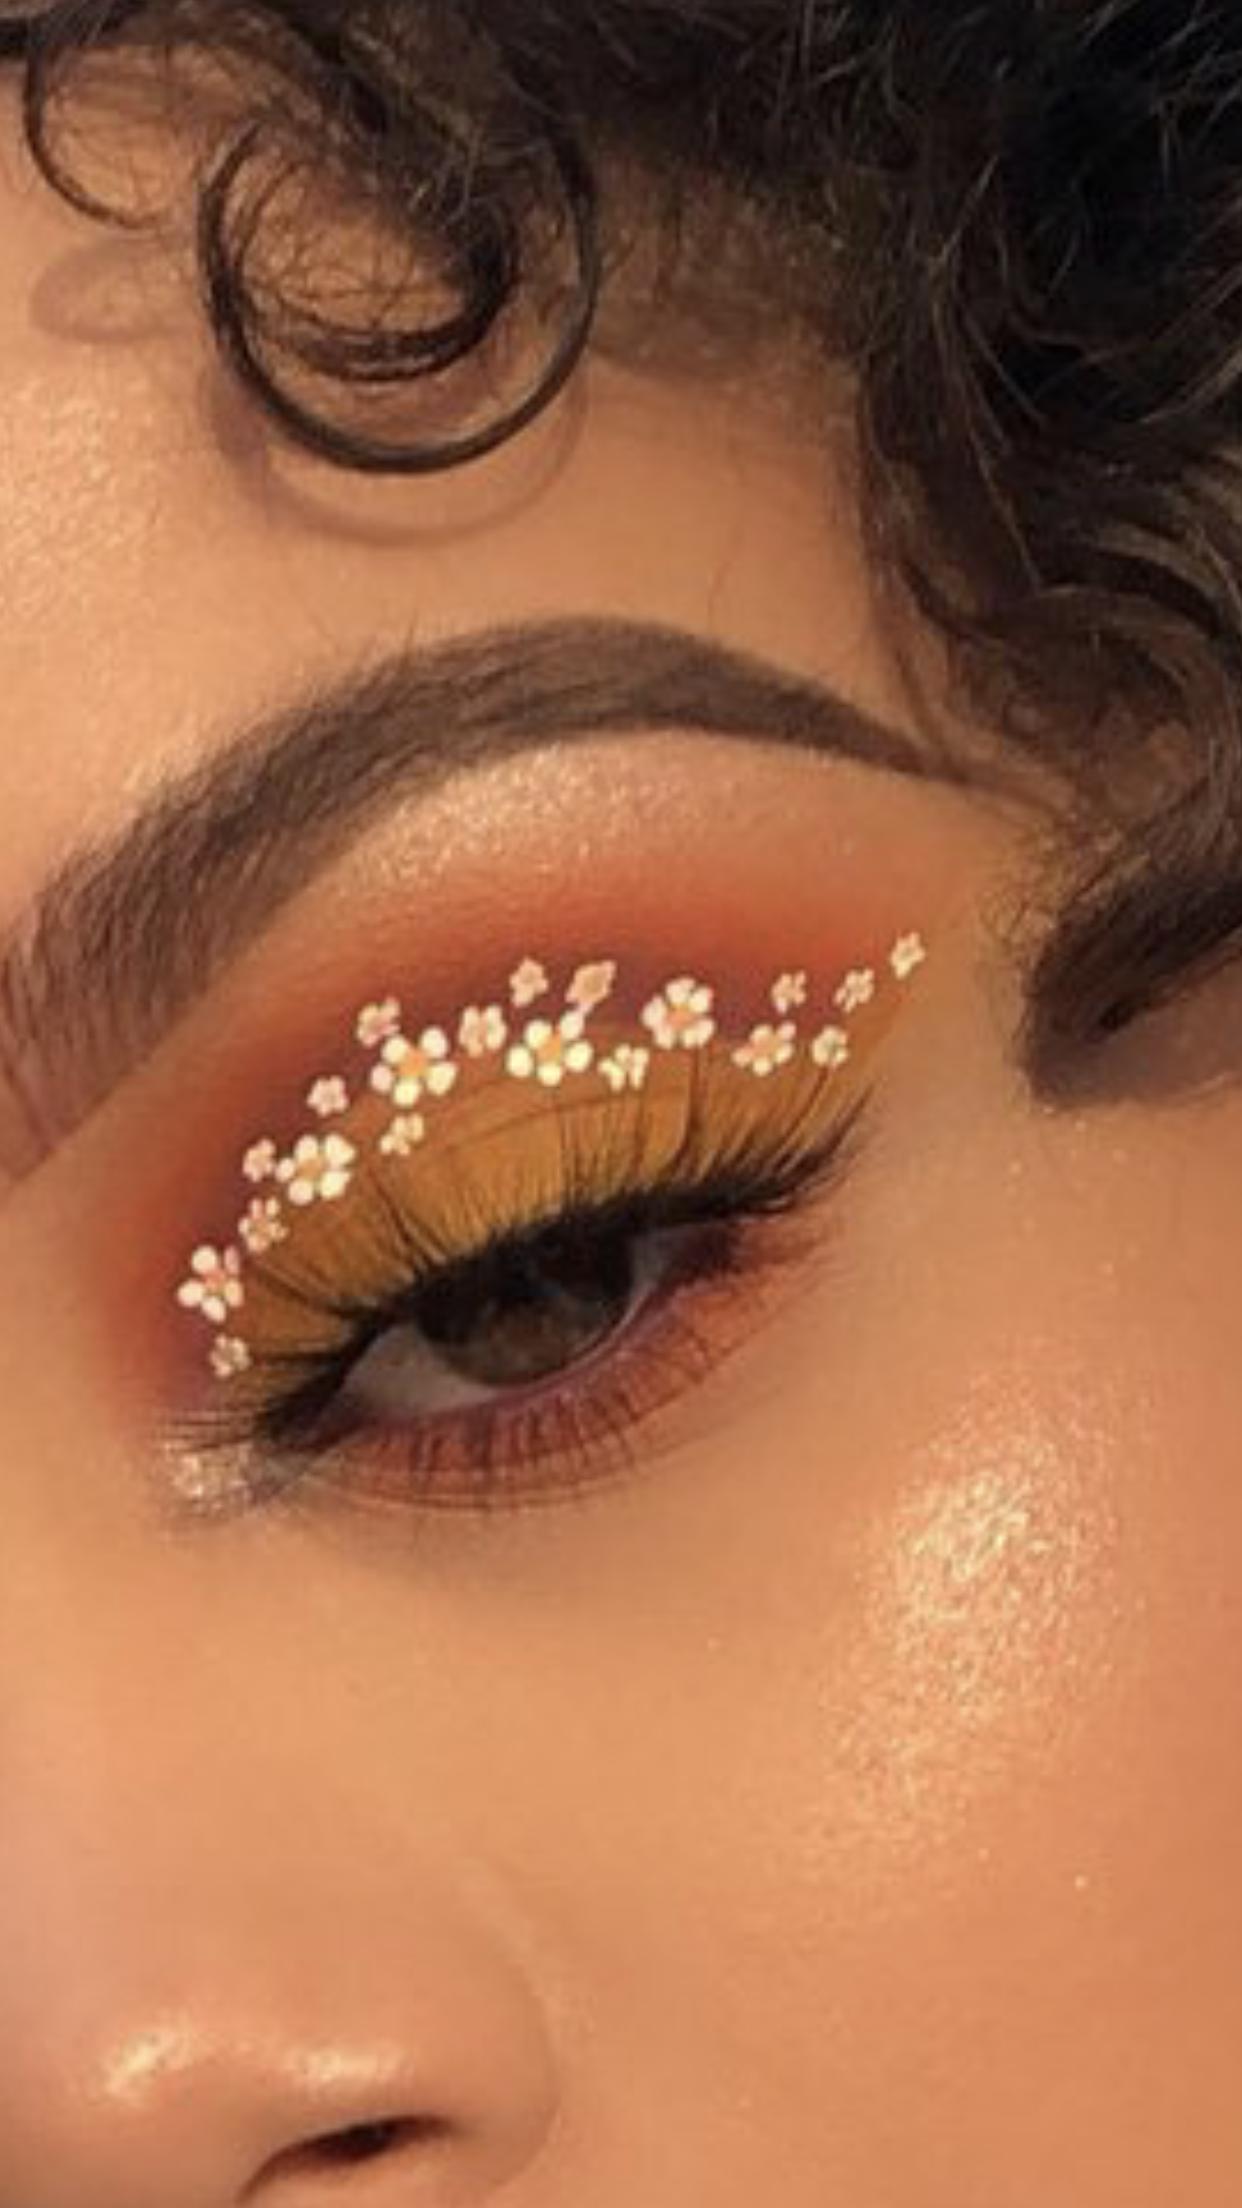 Pin by Sierra Hollis on Makeup Your Mind Aesthetic makeup